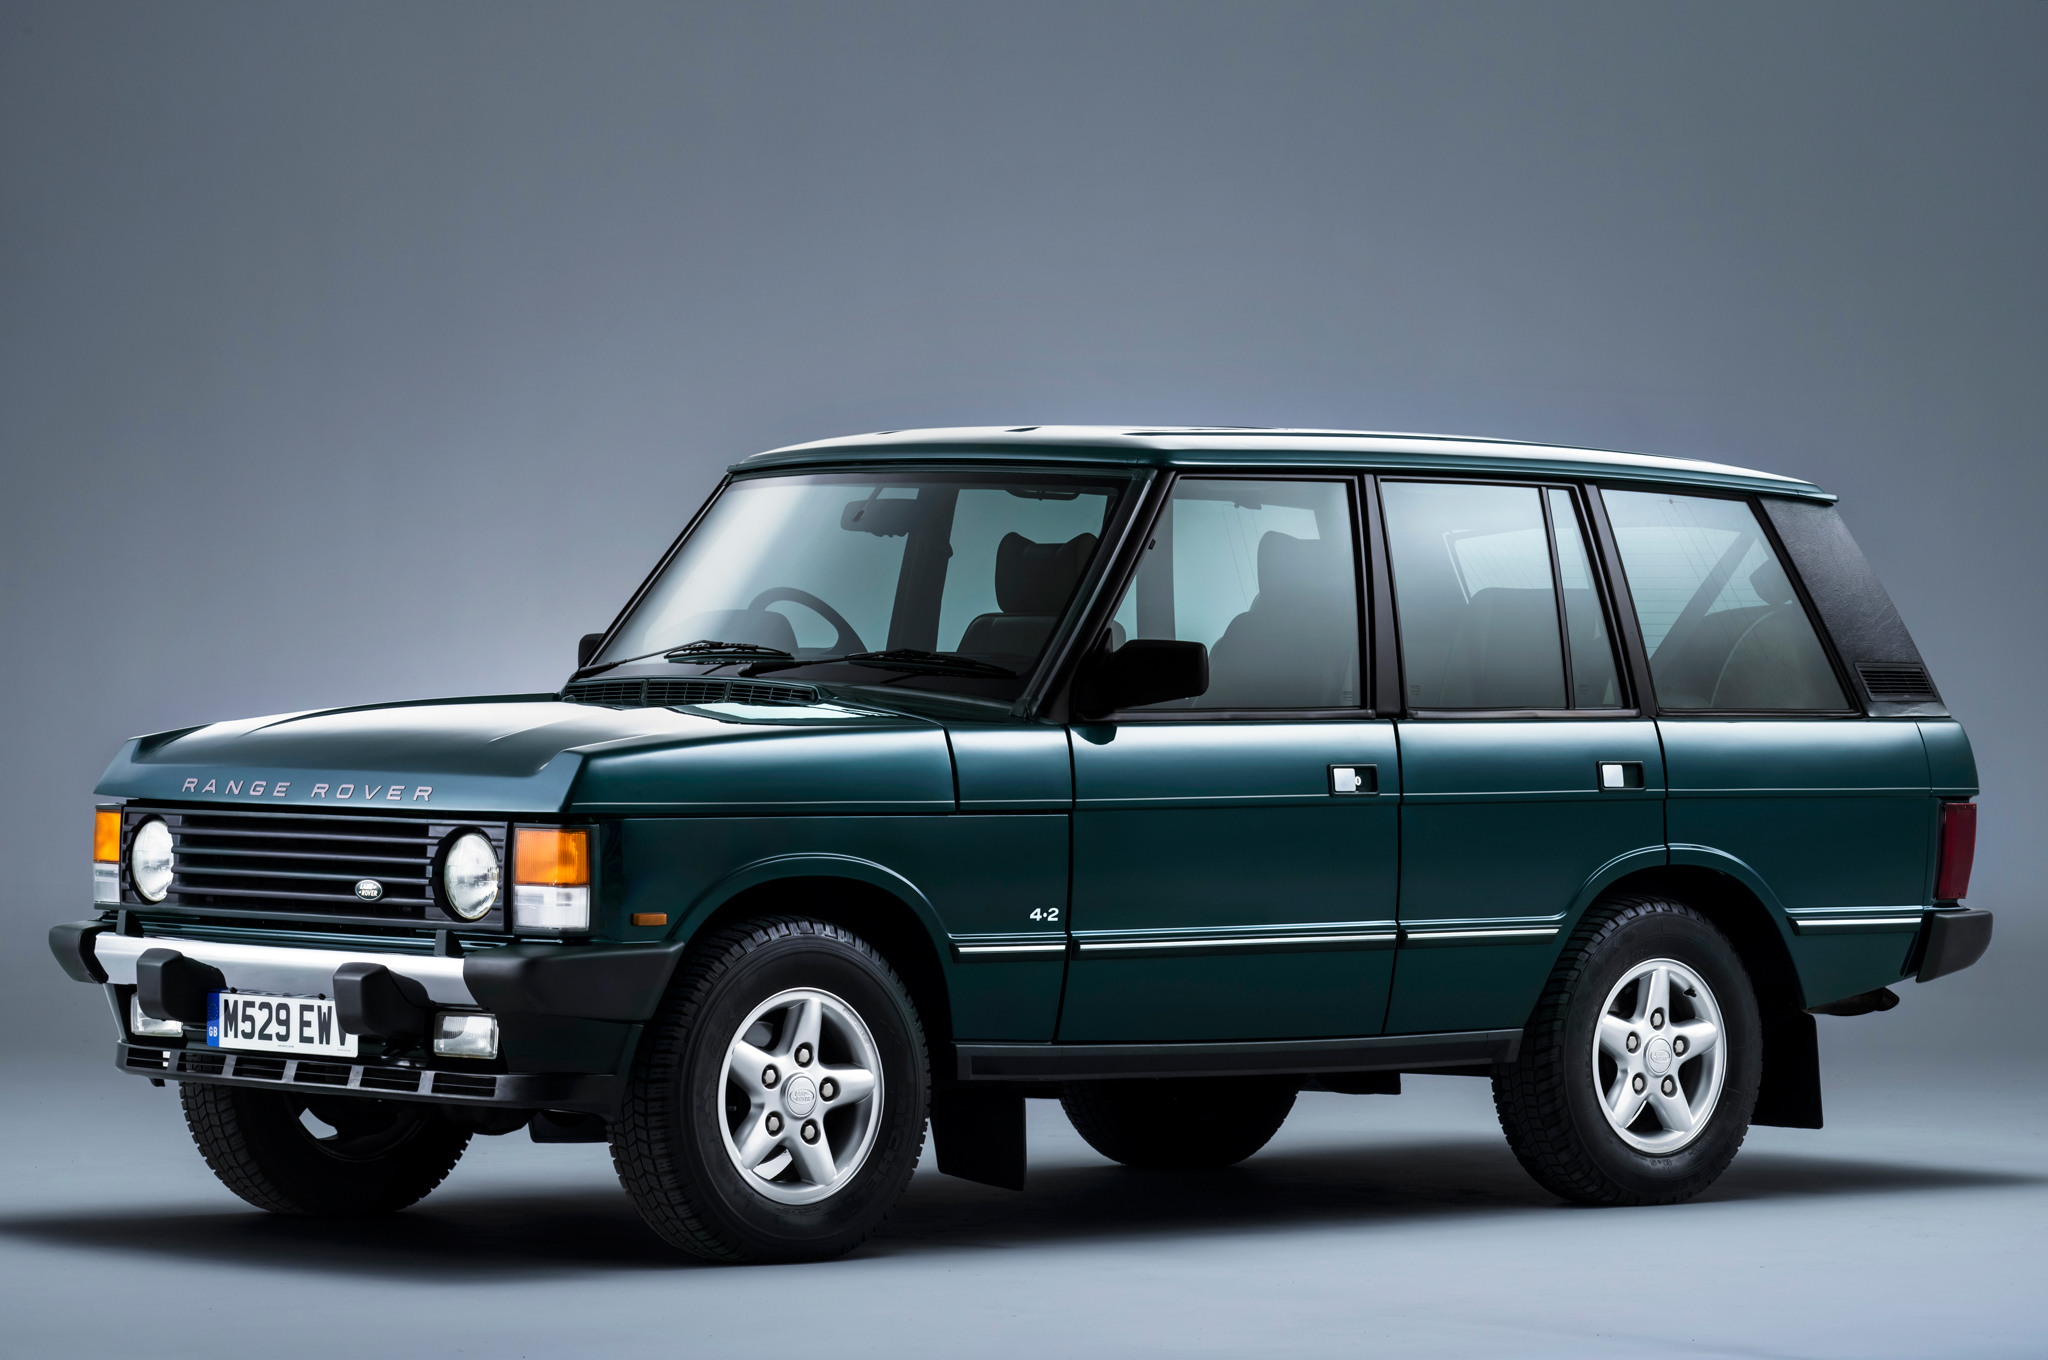 Land Rover Models >> Land Rover Heritage Division To Offer Parts For Older Models